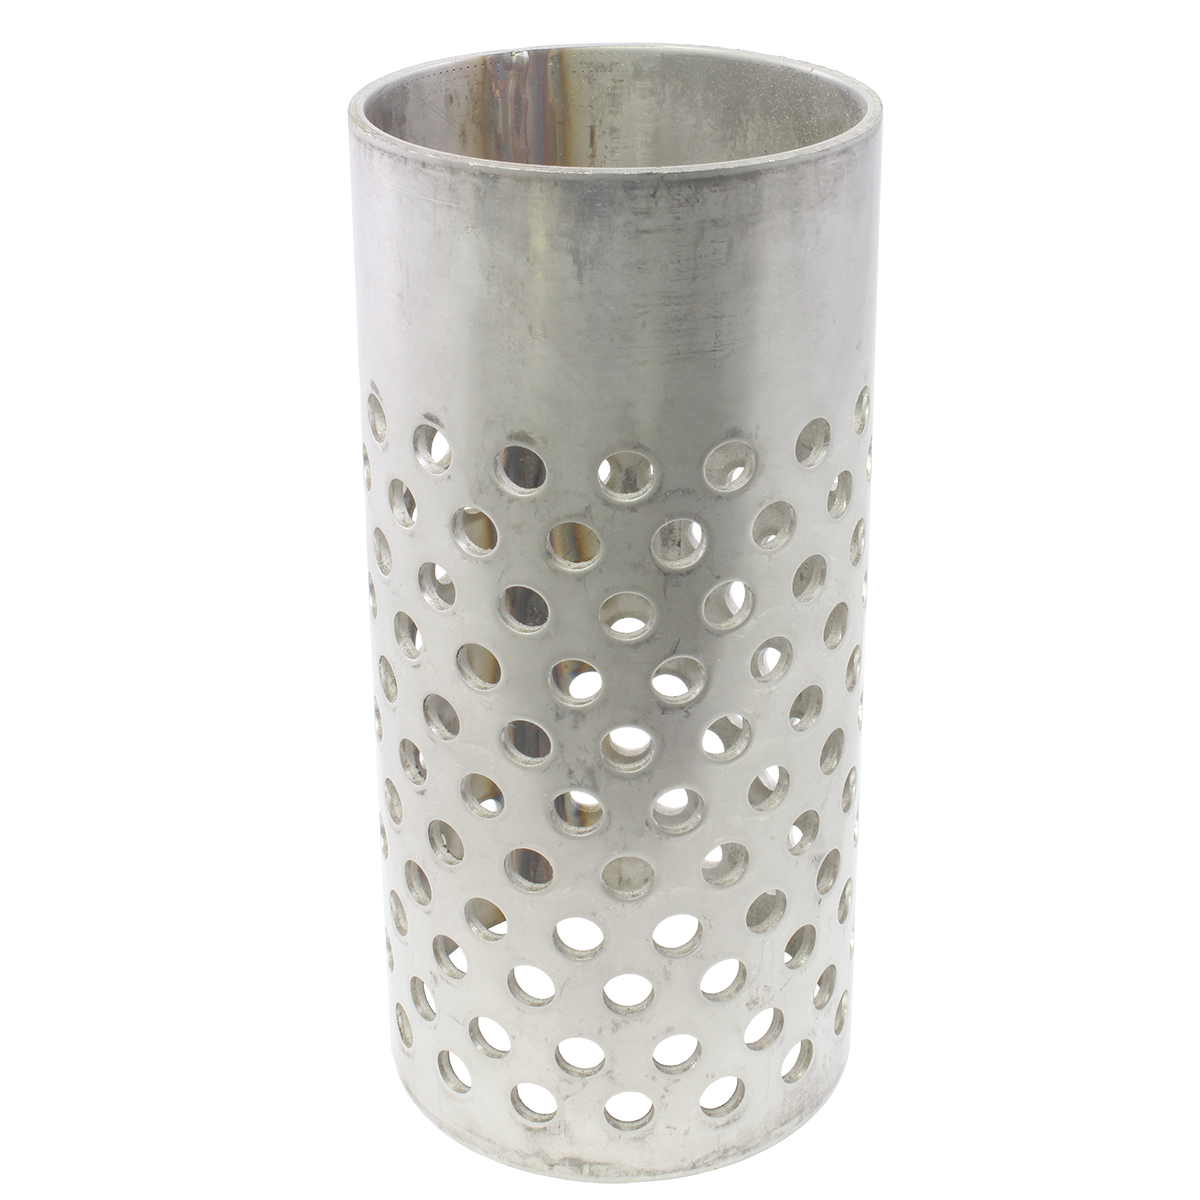 """Stainless Steel Perforated Flask - 4"""" x 6"""" - No Flange"""